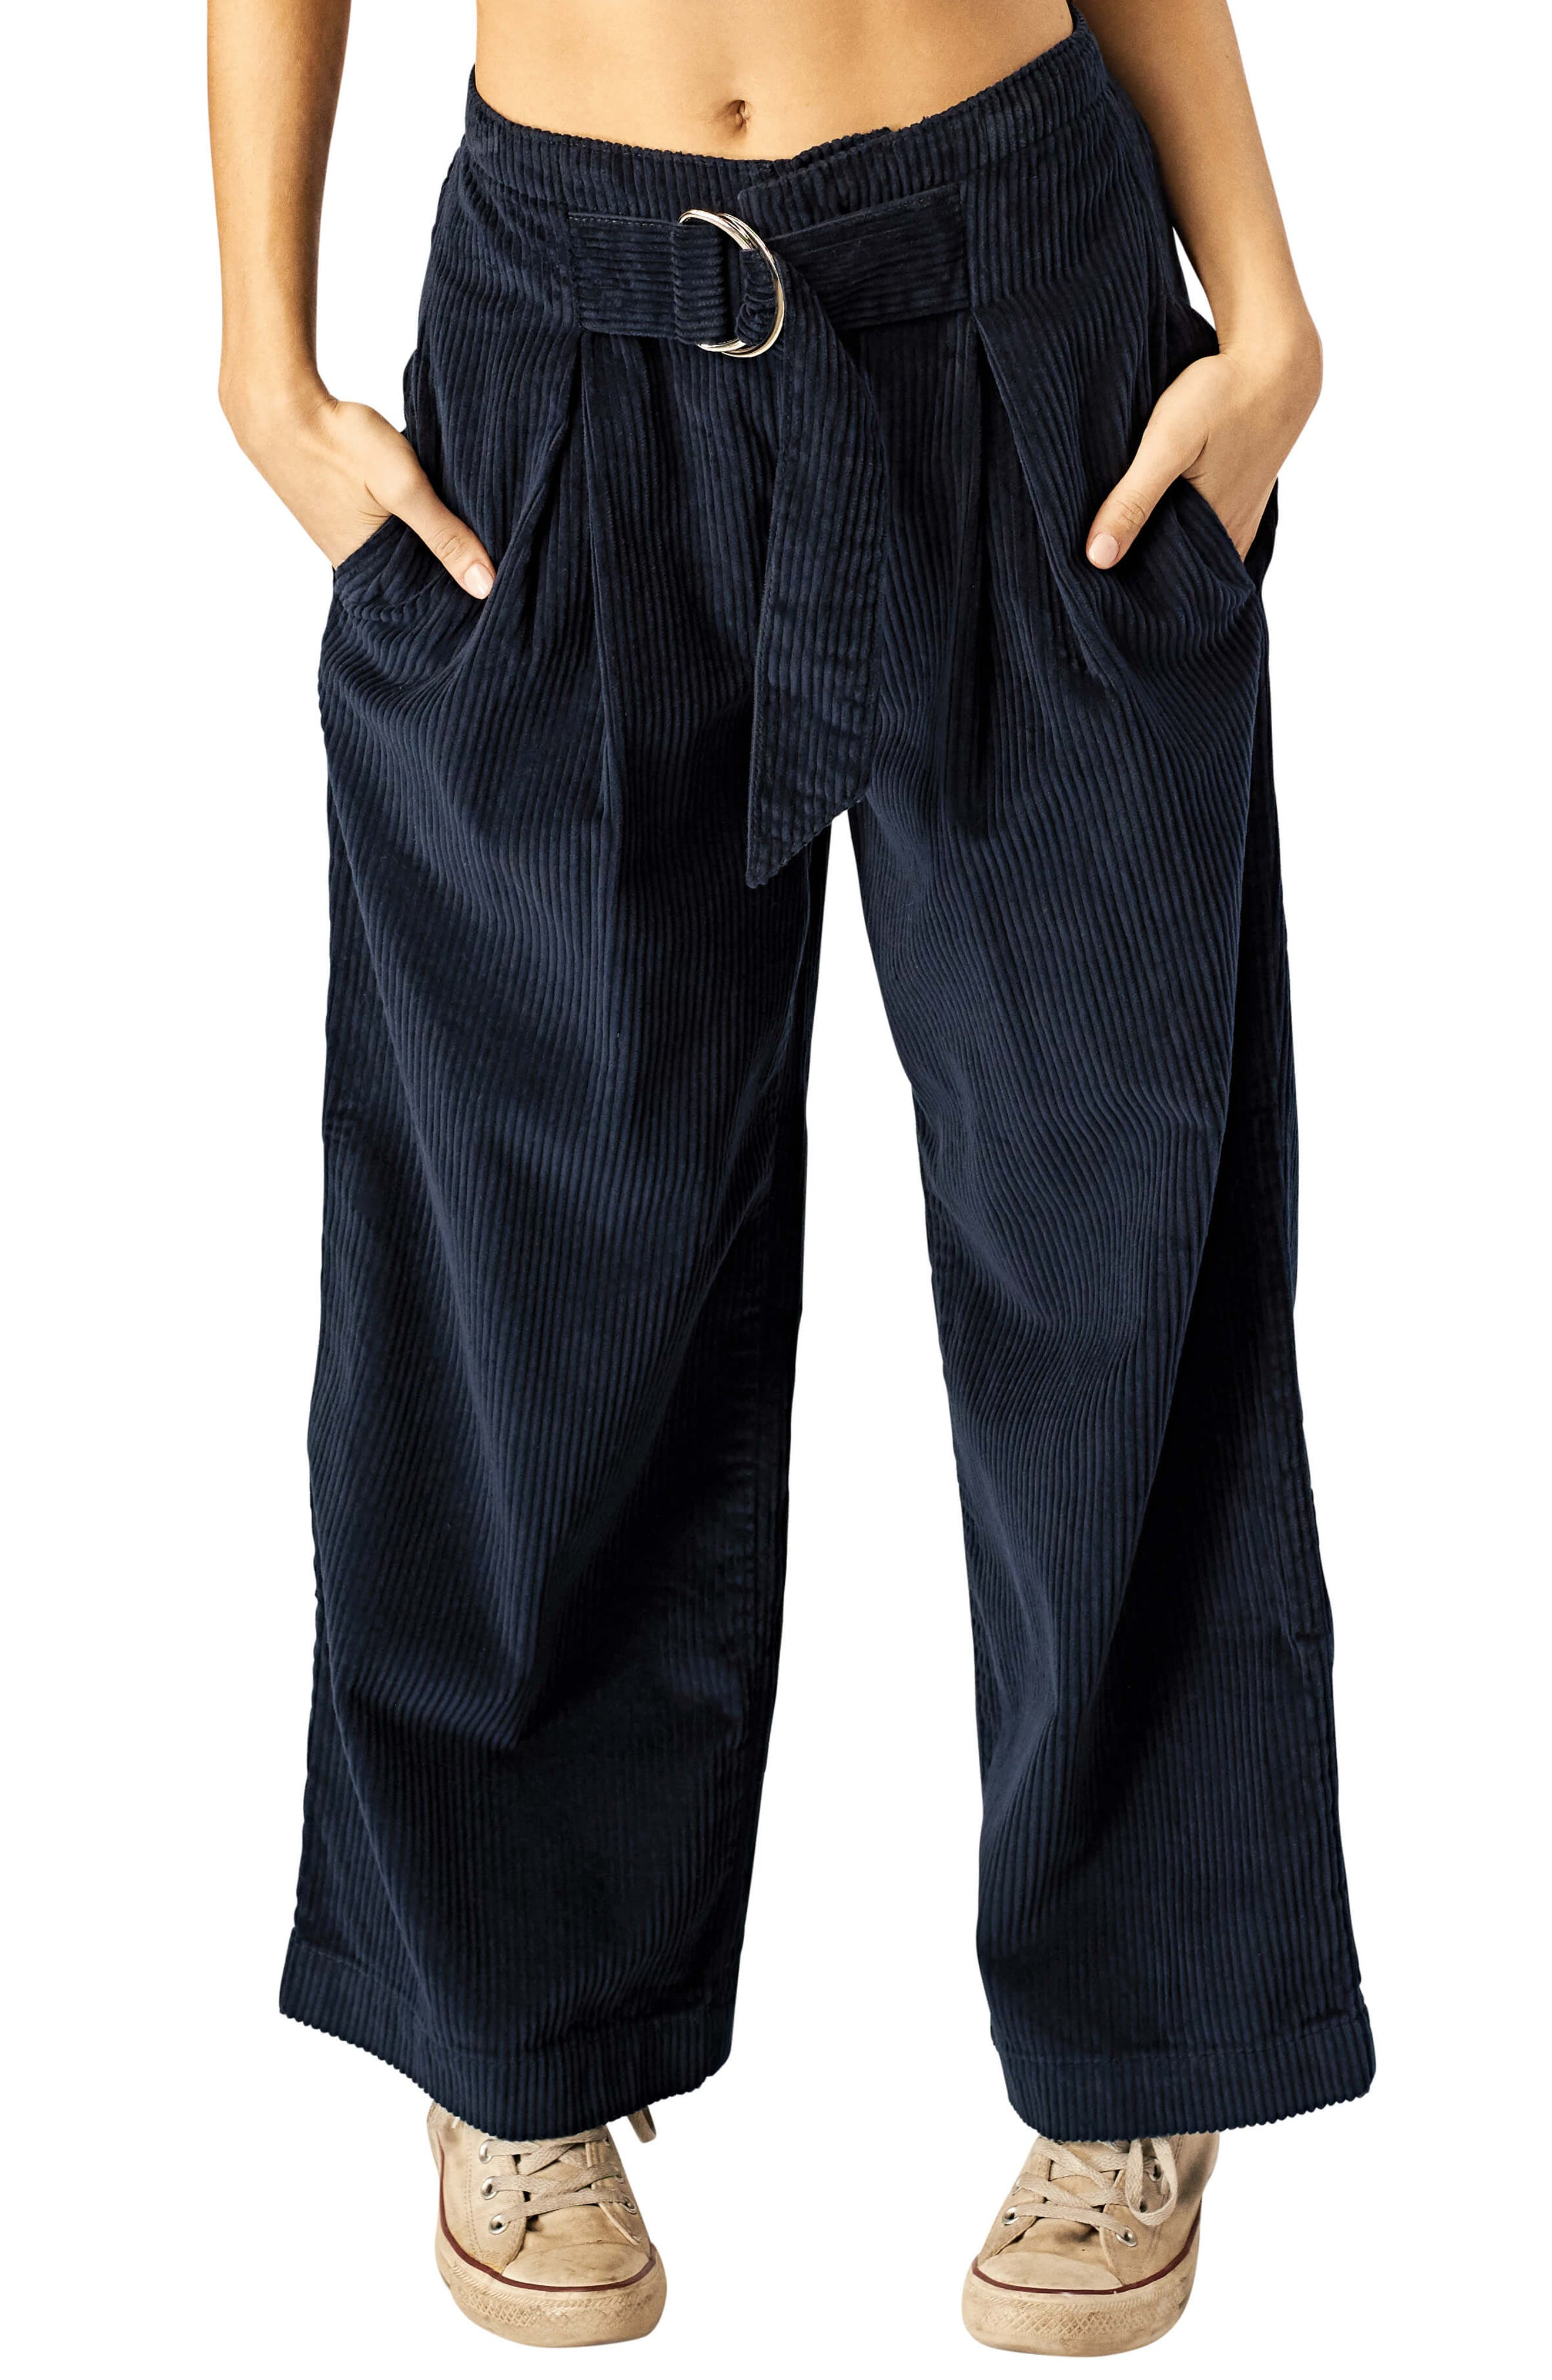 STONE ROW Cut the Cord Corduroy Ankle Wide Leg Pants, Main, color, SEA NAVY